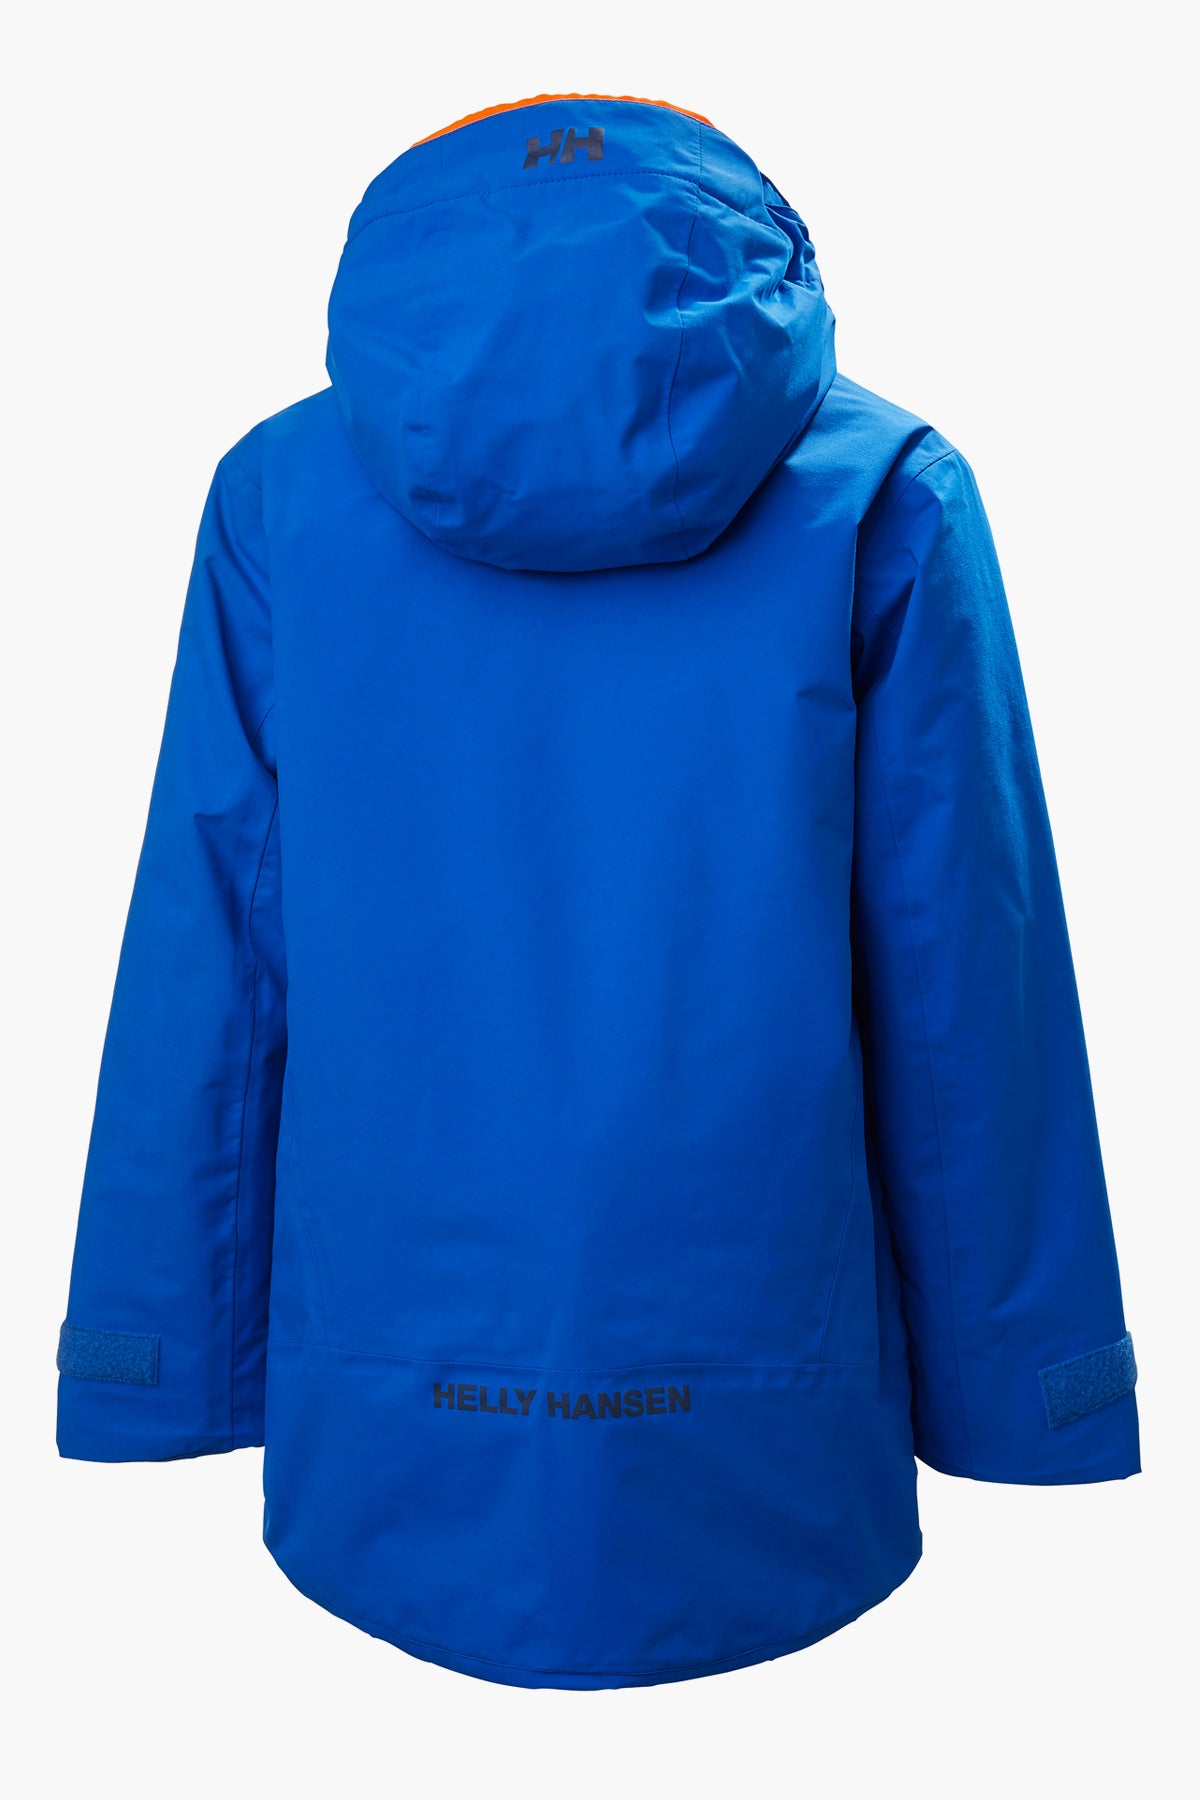 Helly Hansen Kids Jacket Blaze - Sonic Blue